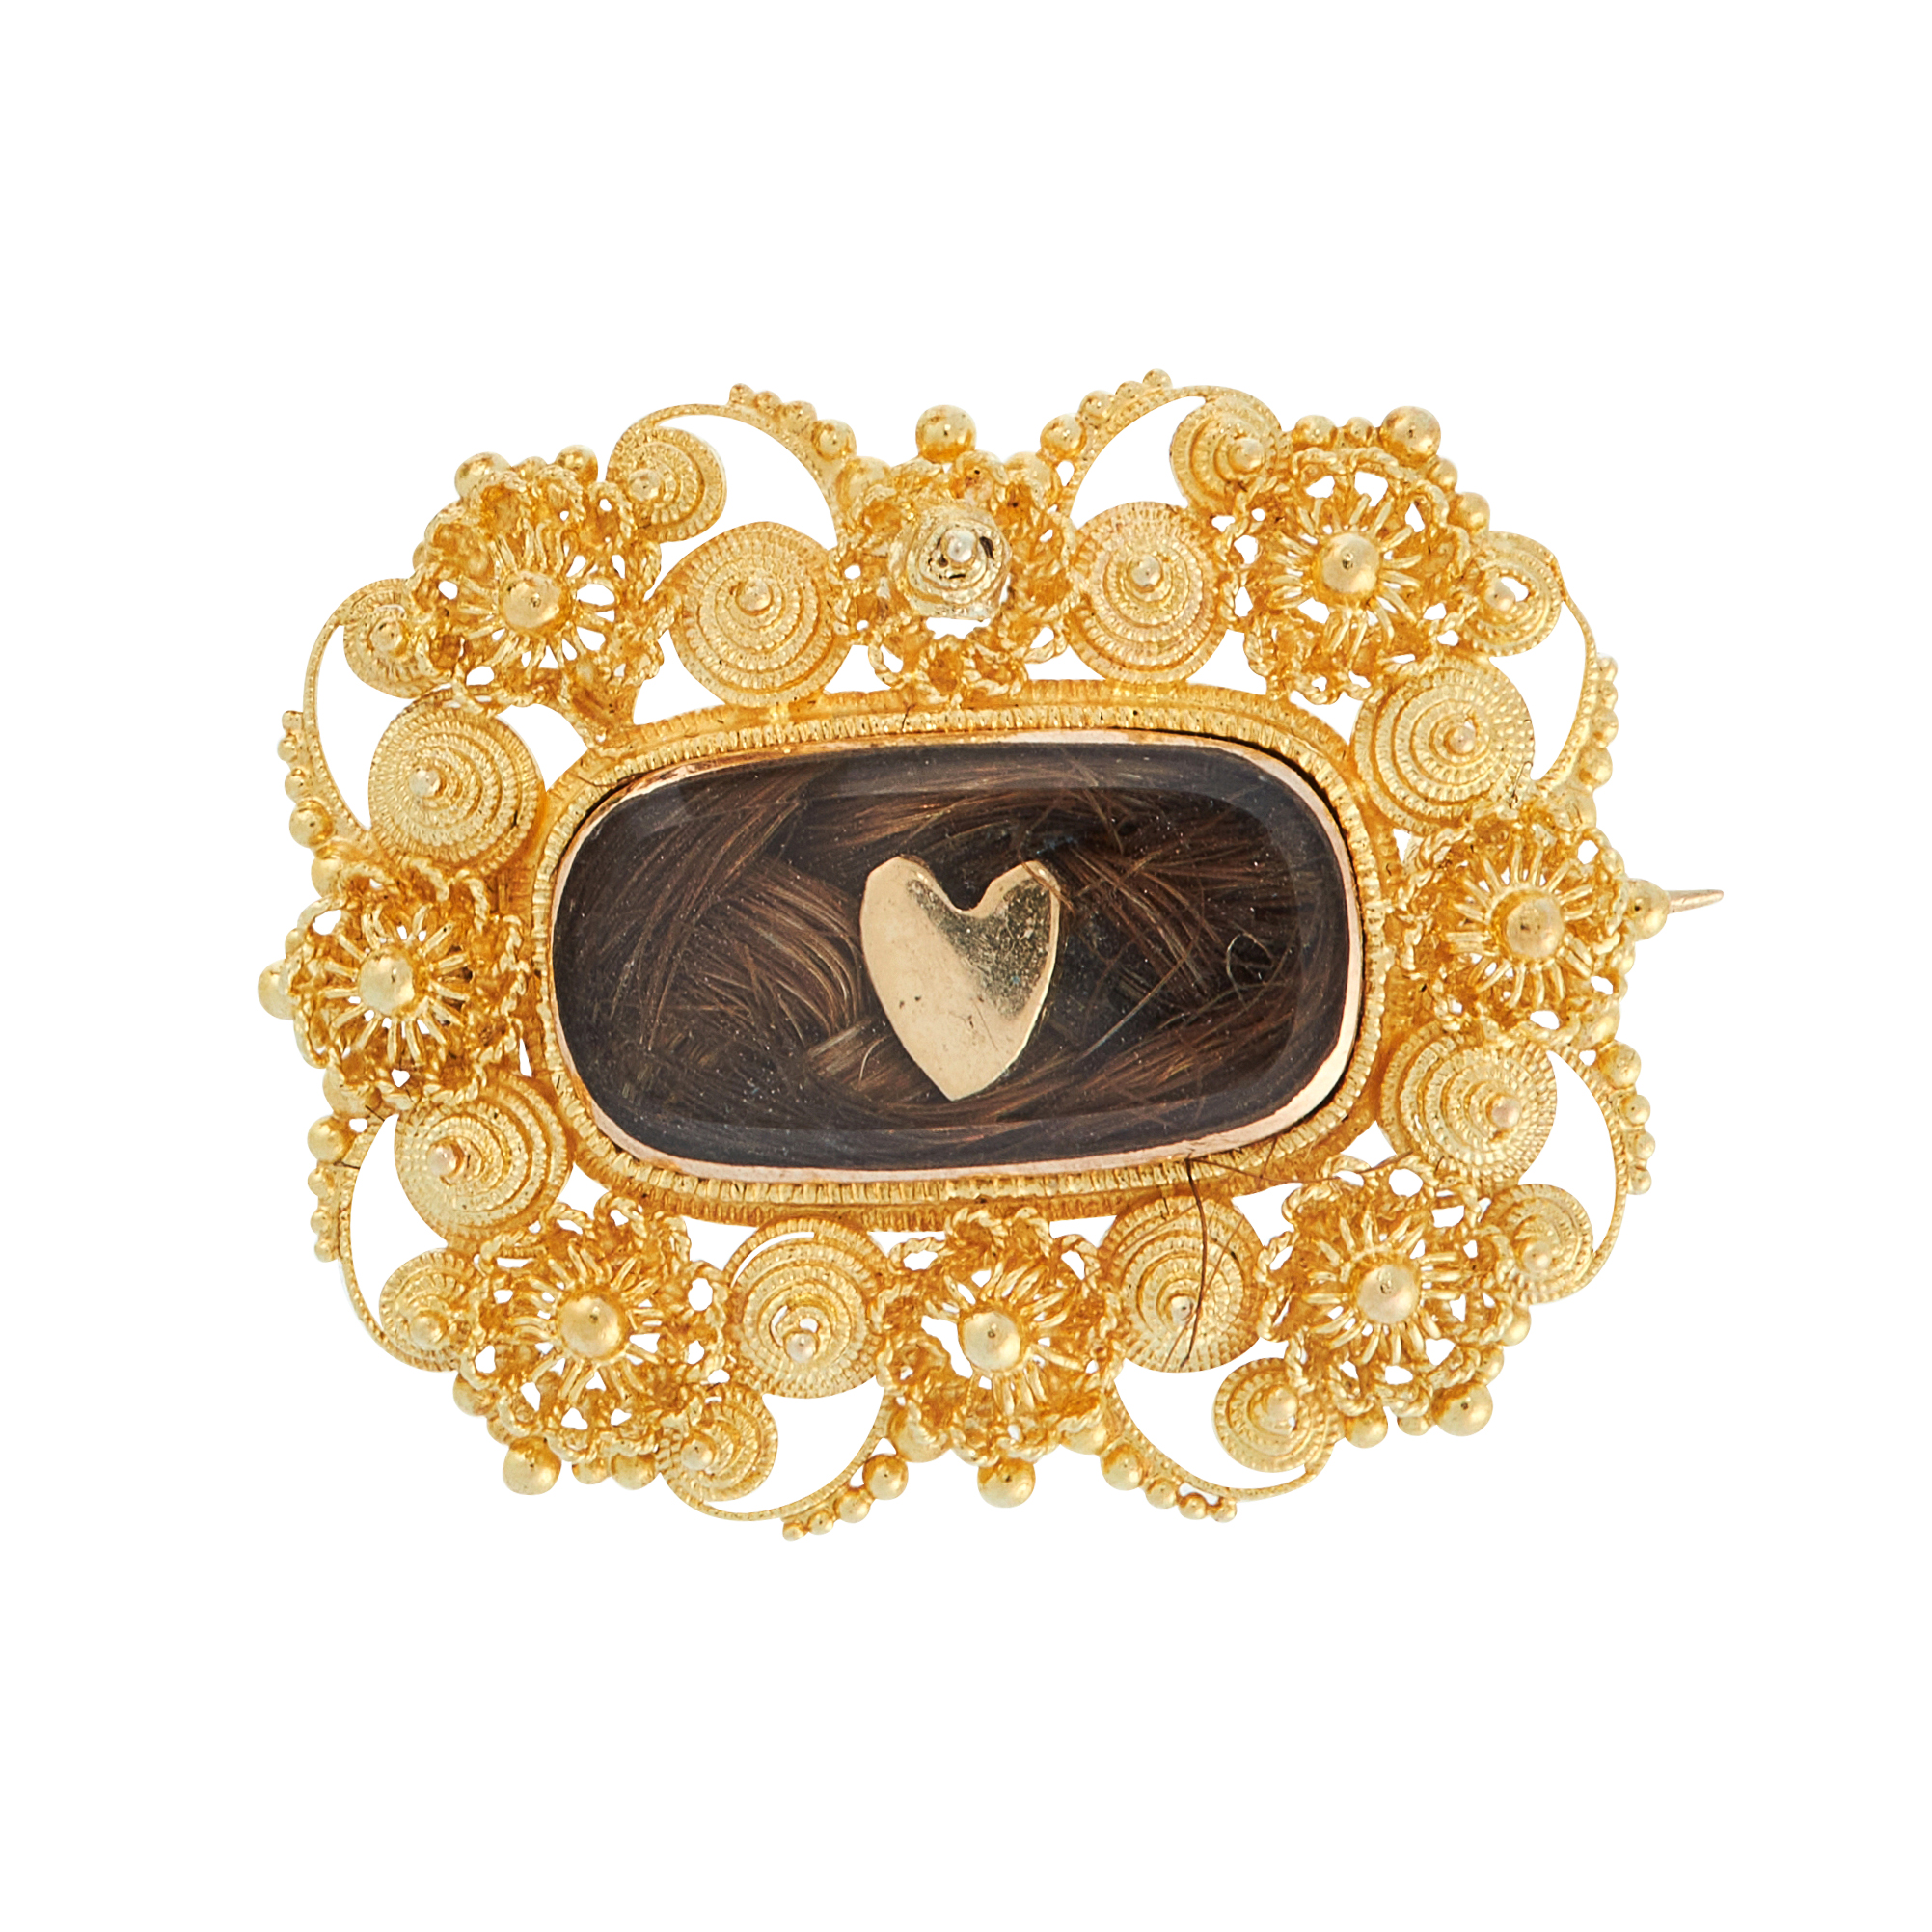 AN ANTIQUE HAIRWORK MOURNING BROOCH in high carat yellow gold, comprising of a central hairwork